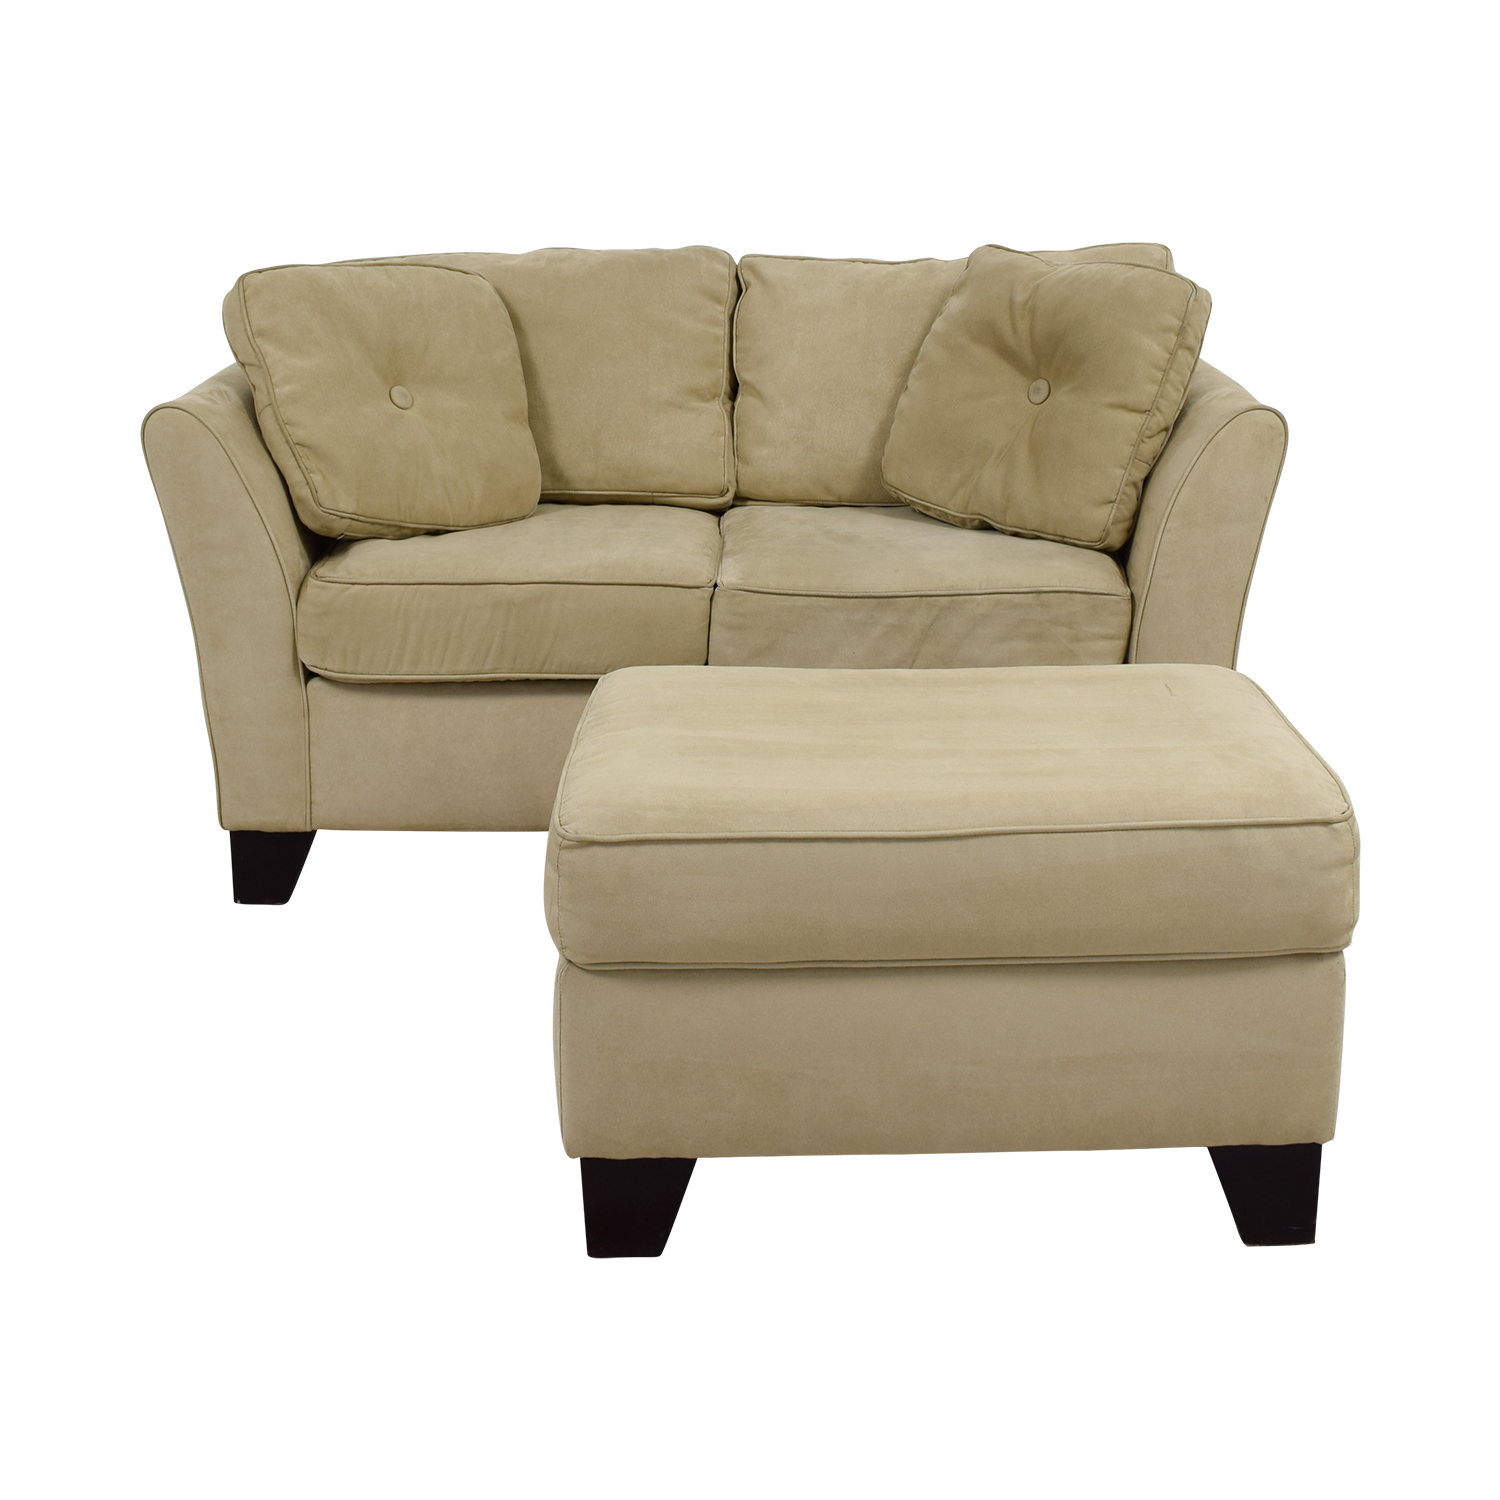 Macy's Macy's Tan Loveseat with Ottoman used